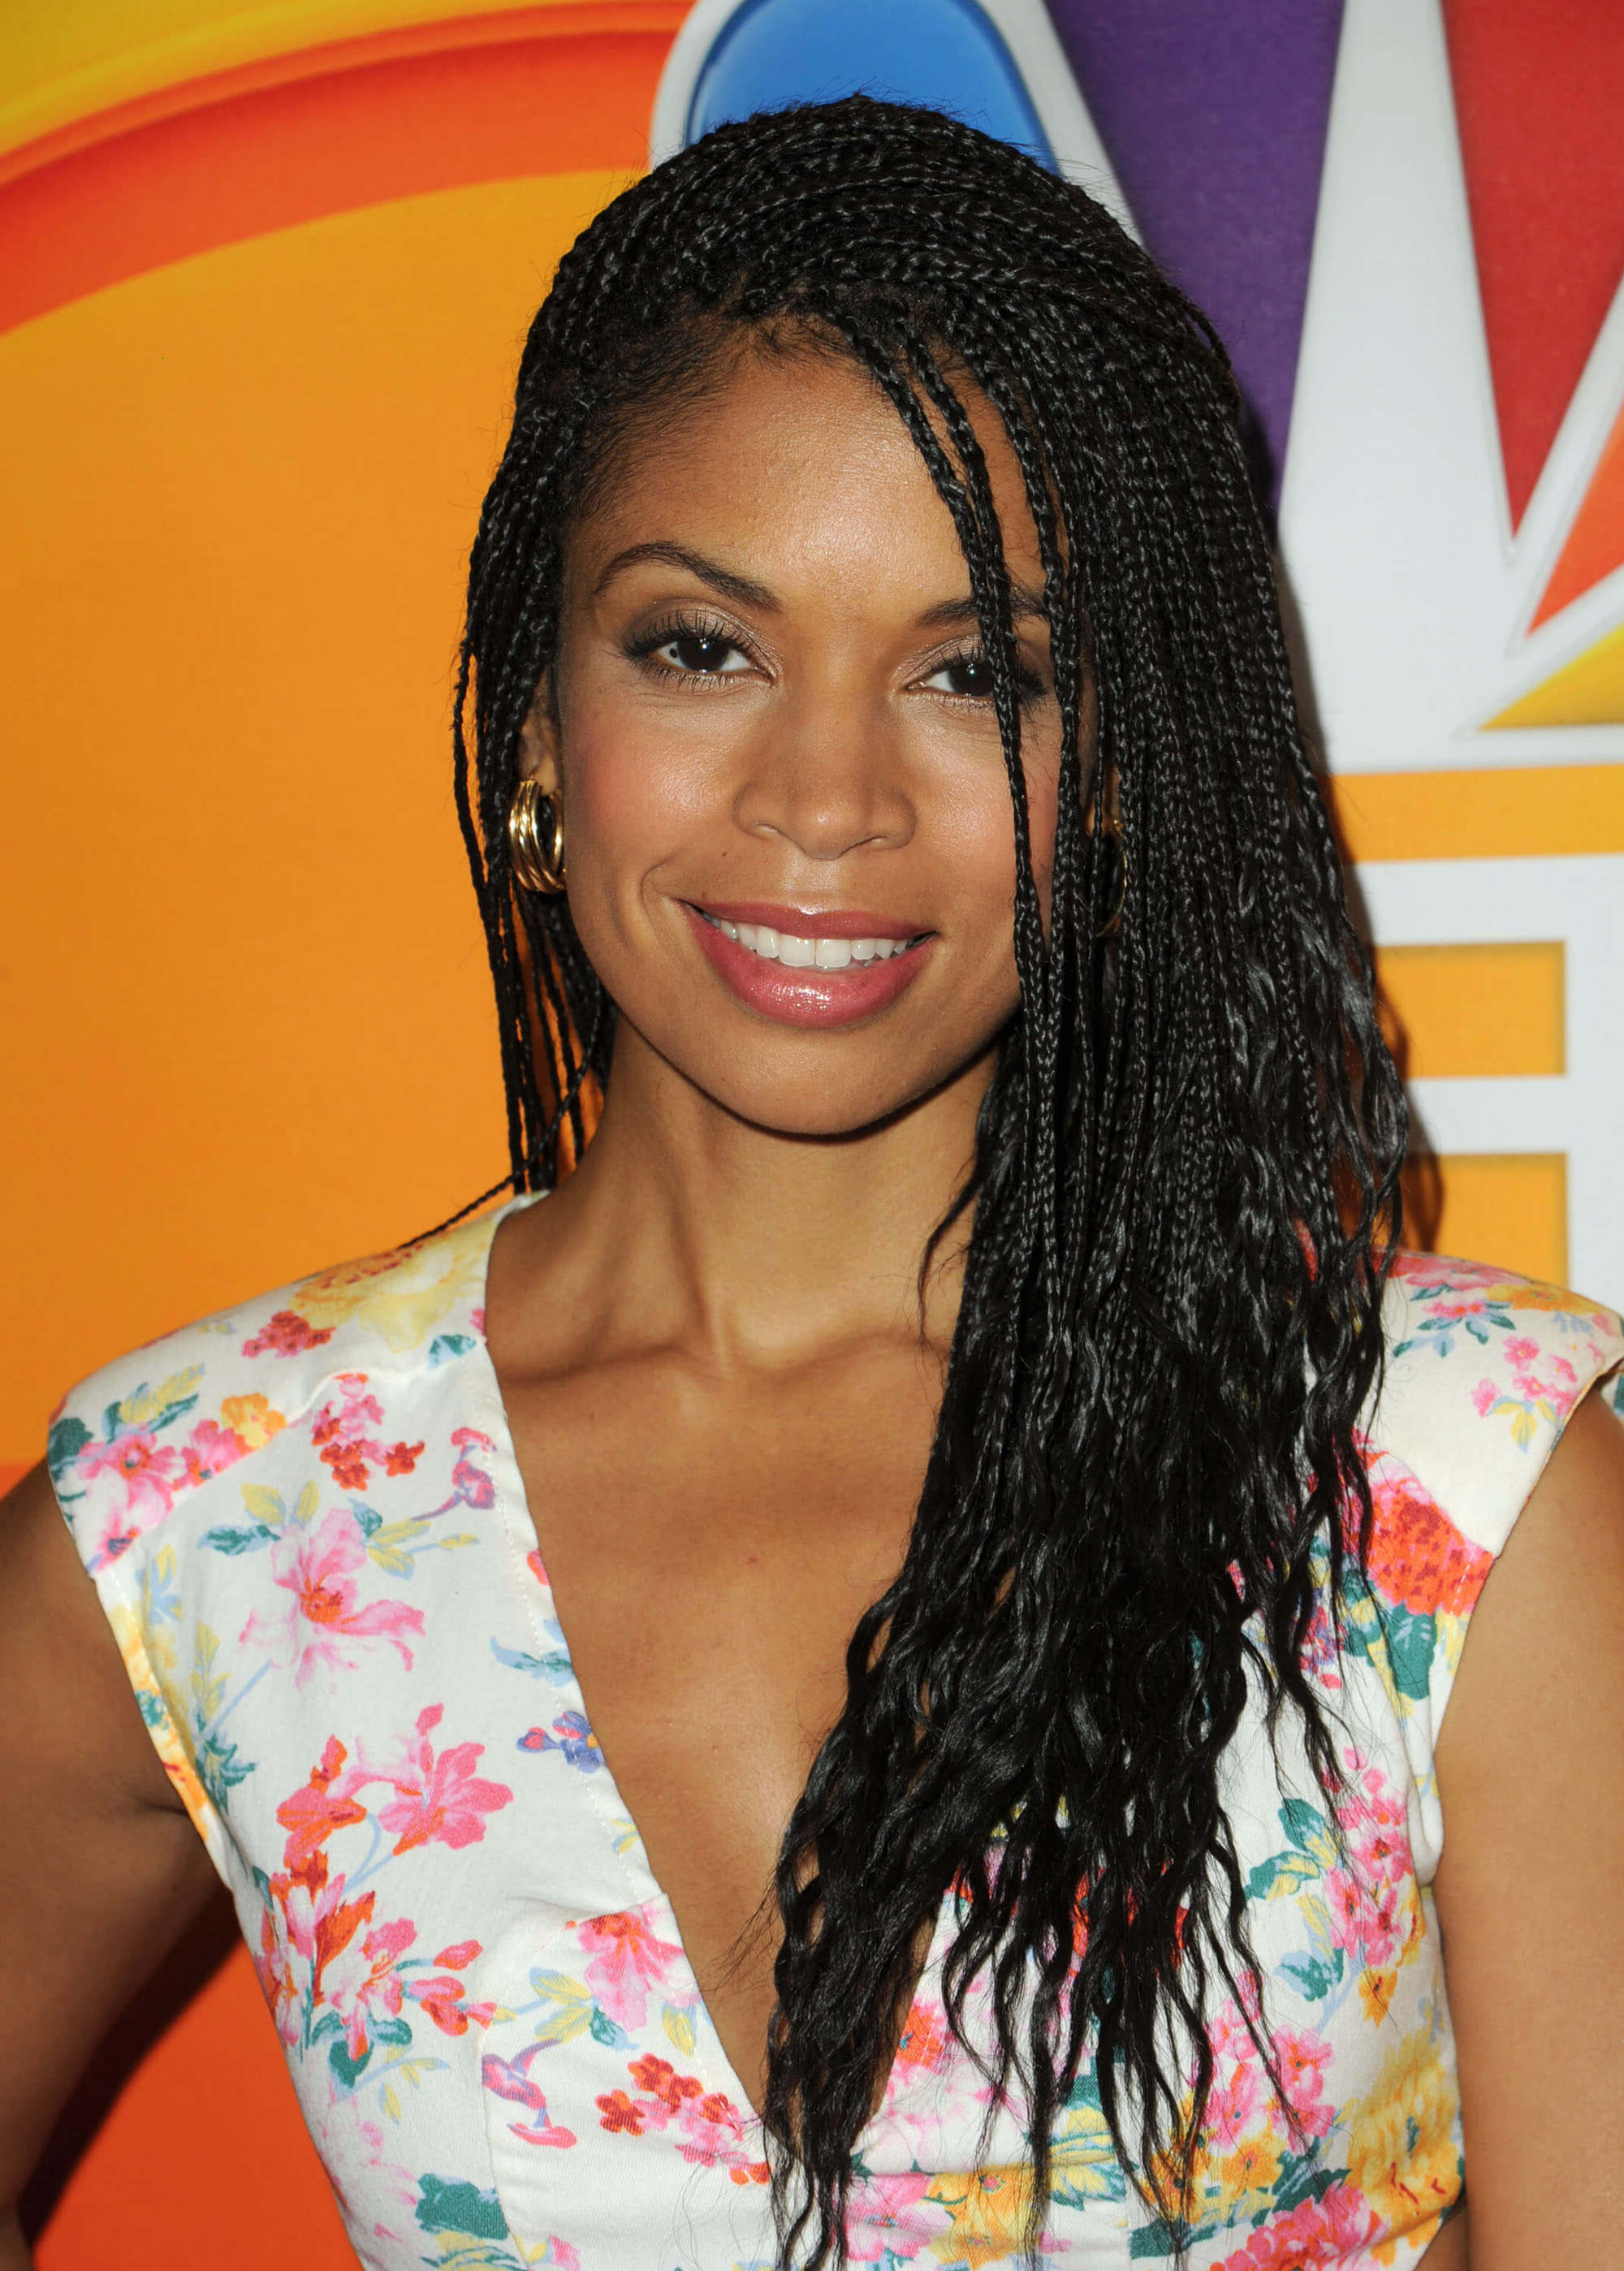 Famous Side Swept Twists Micro Braids With Beads Intended For Micro Braids Hairstyles: 7 Celebrity Looks You Have To See (View 18 of 20)